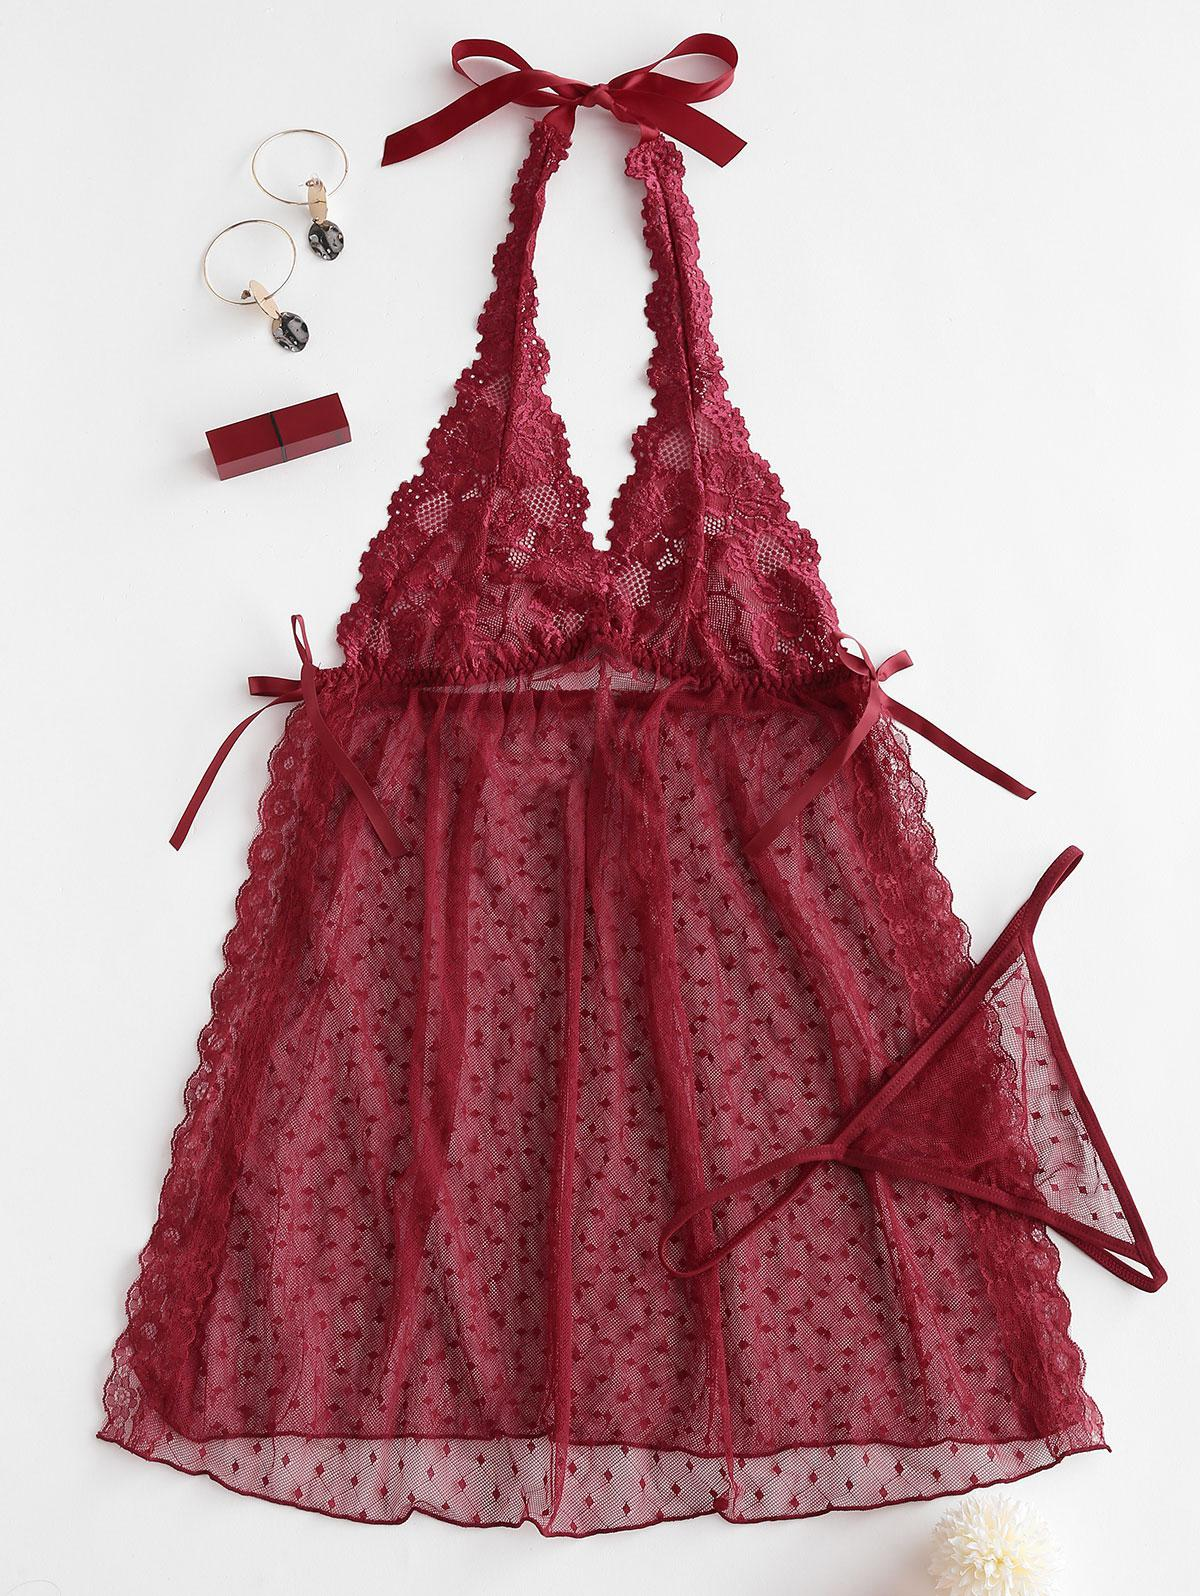 Halter Lace Slit Backless Sheer Babydoll Set